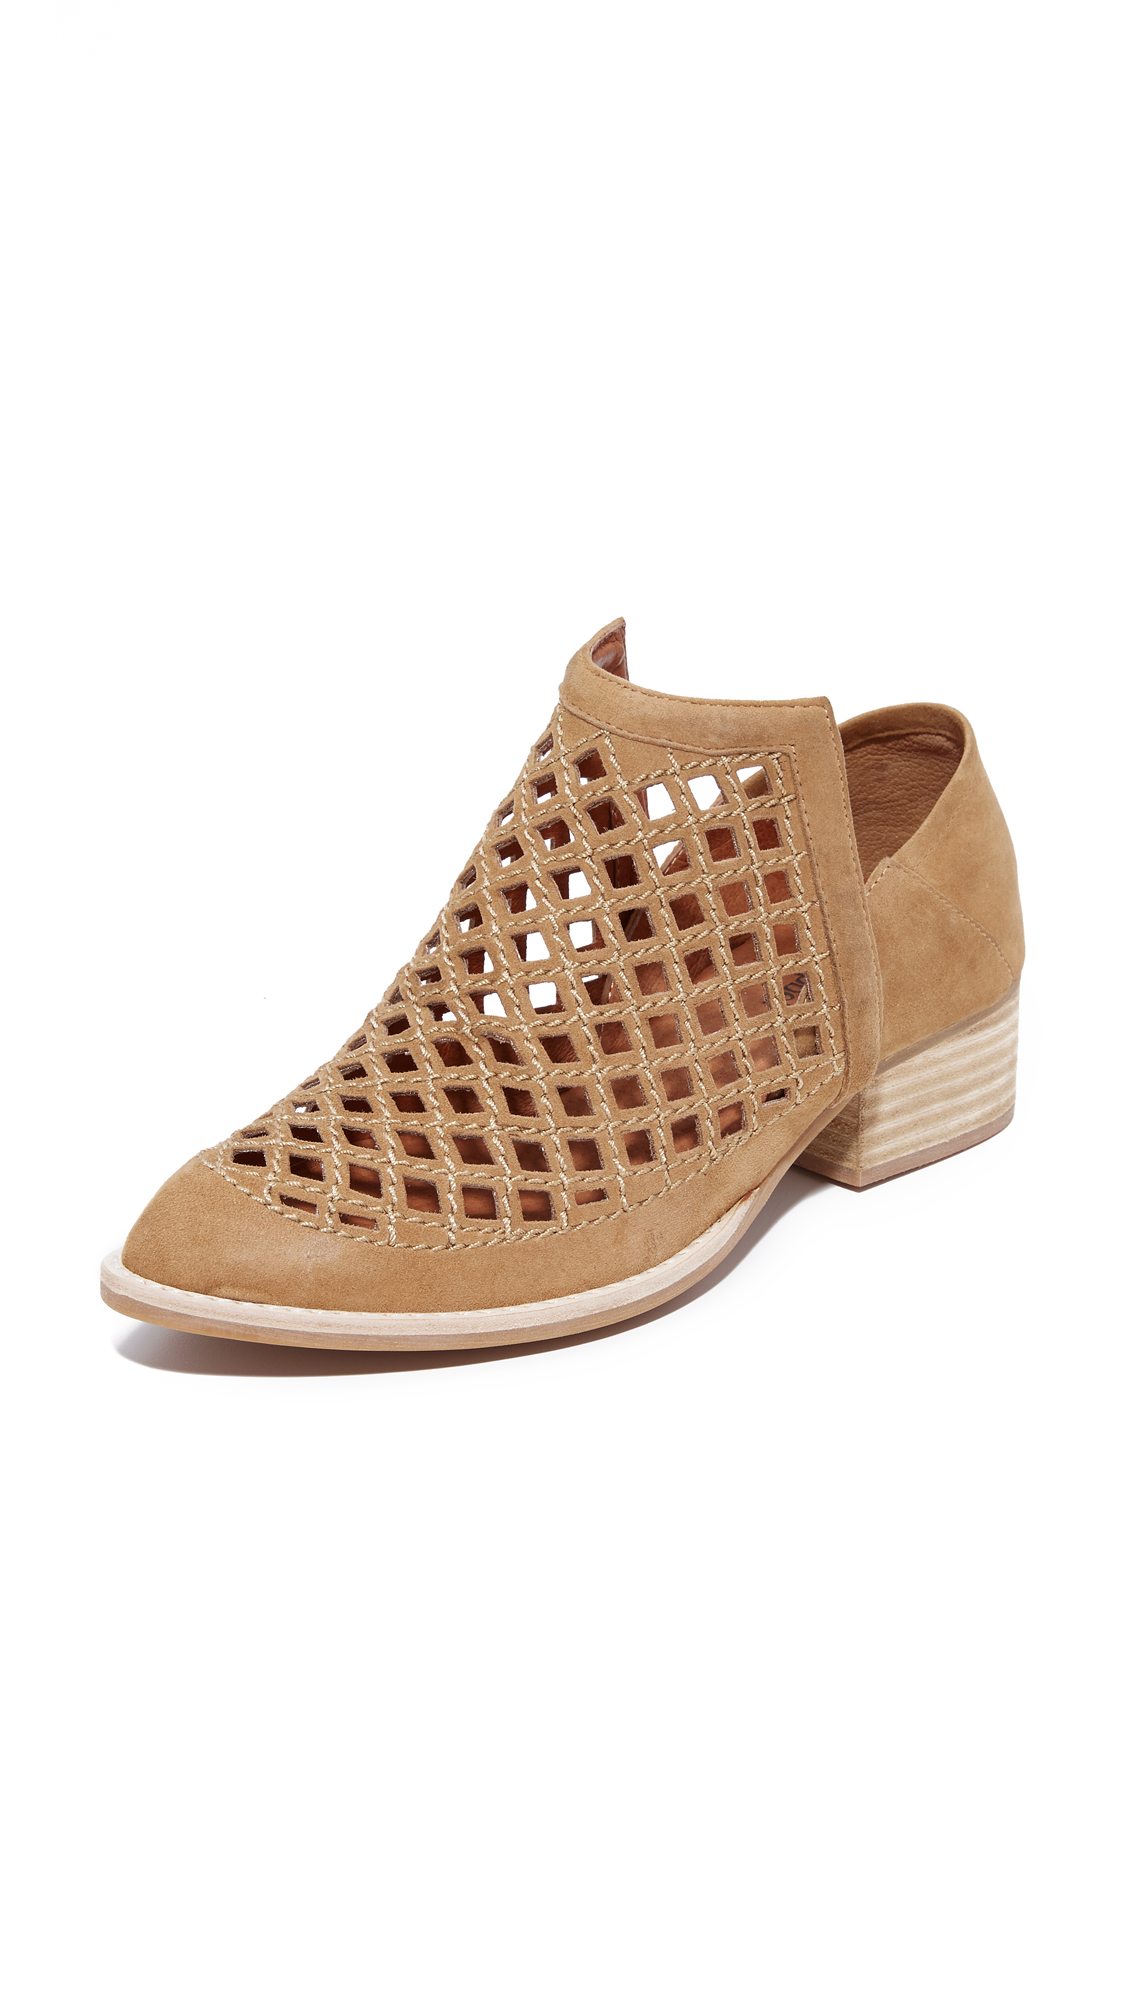 Jeffrey Campbell Tagline Step Down Booties - Camel